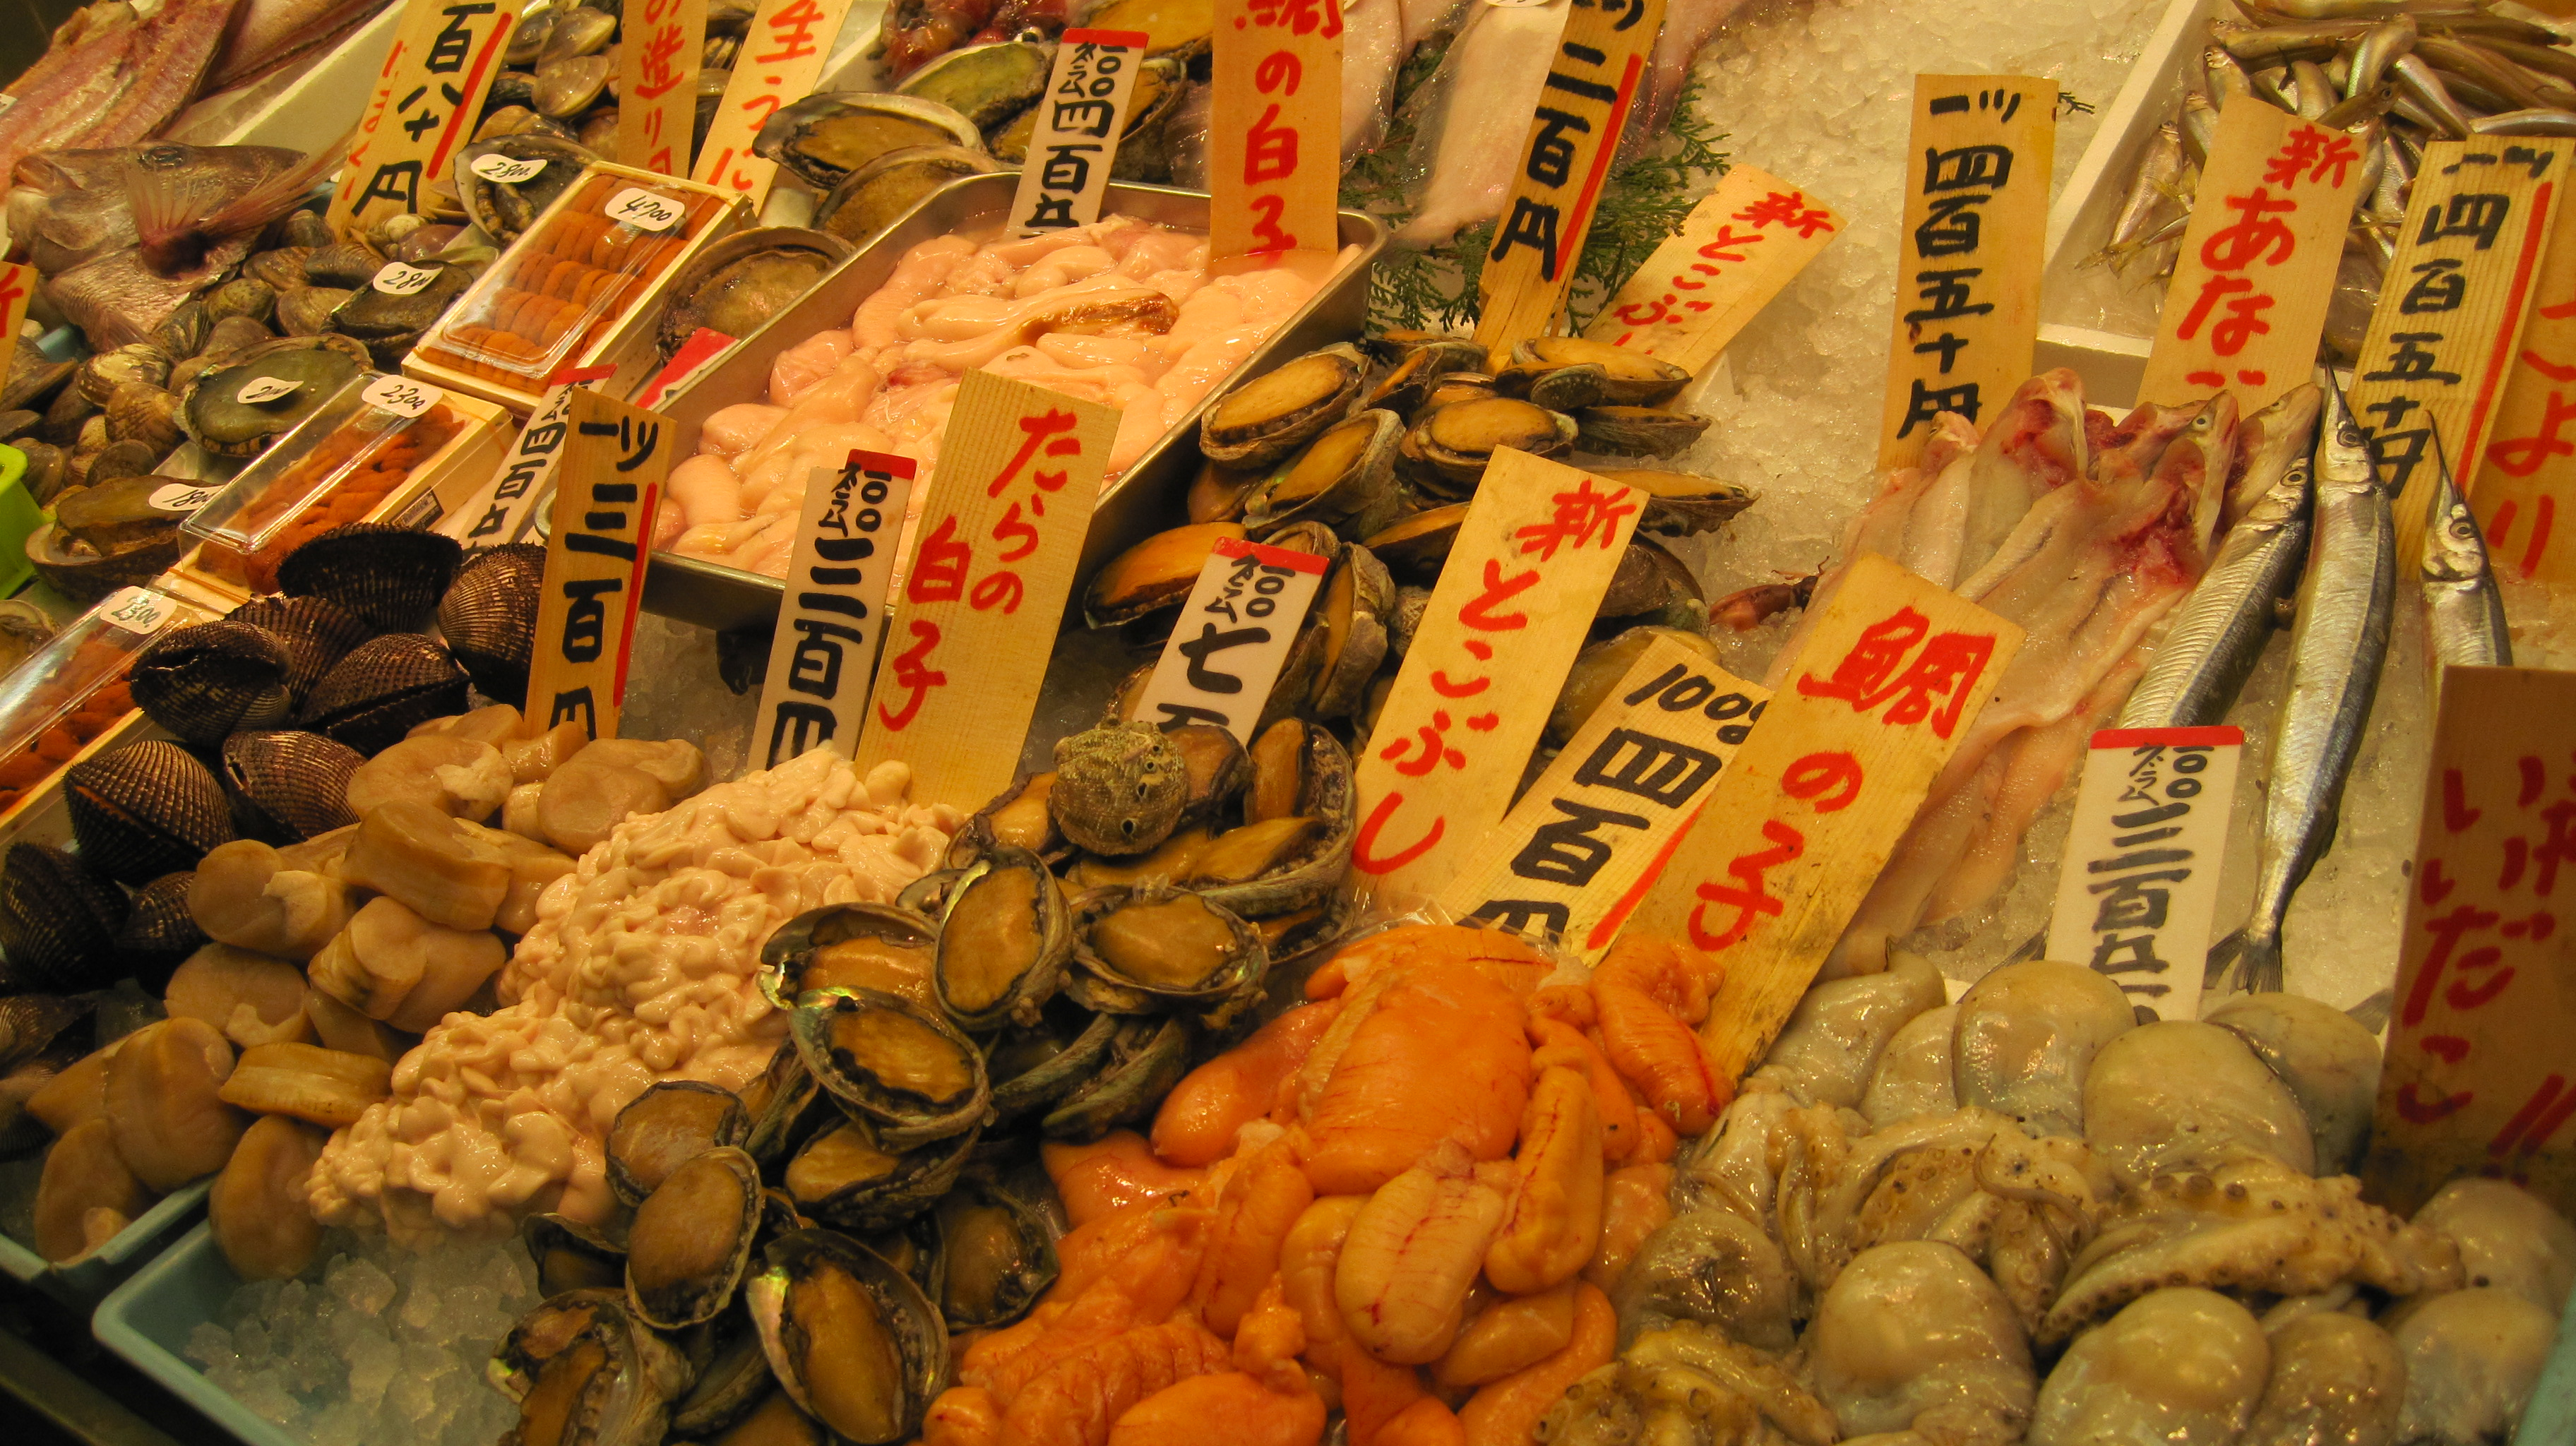 Foodie photos from Japan | The Adventurous Glutton